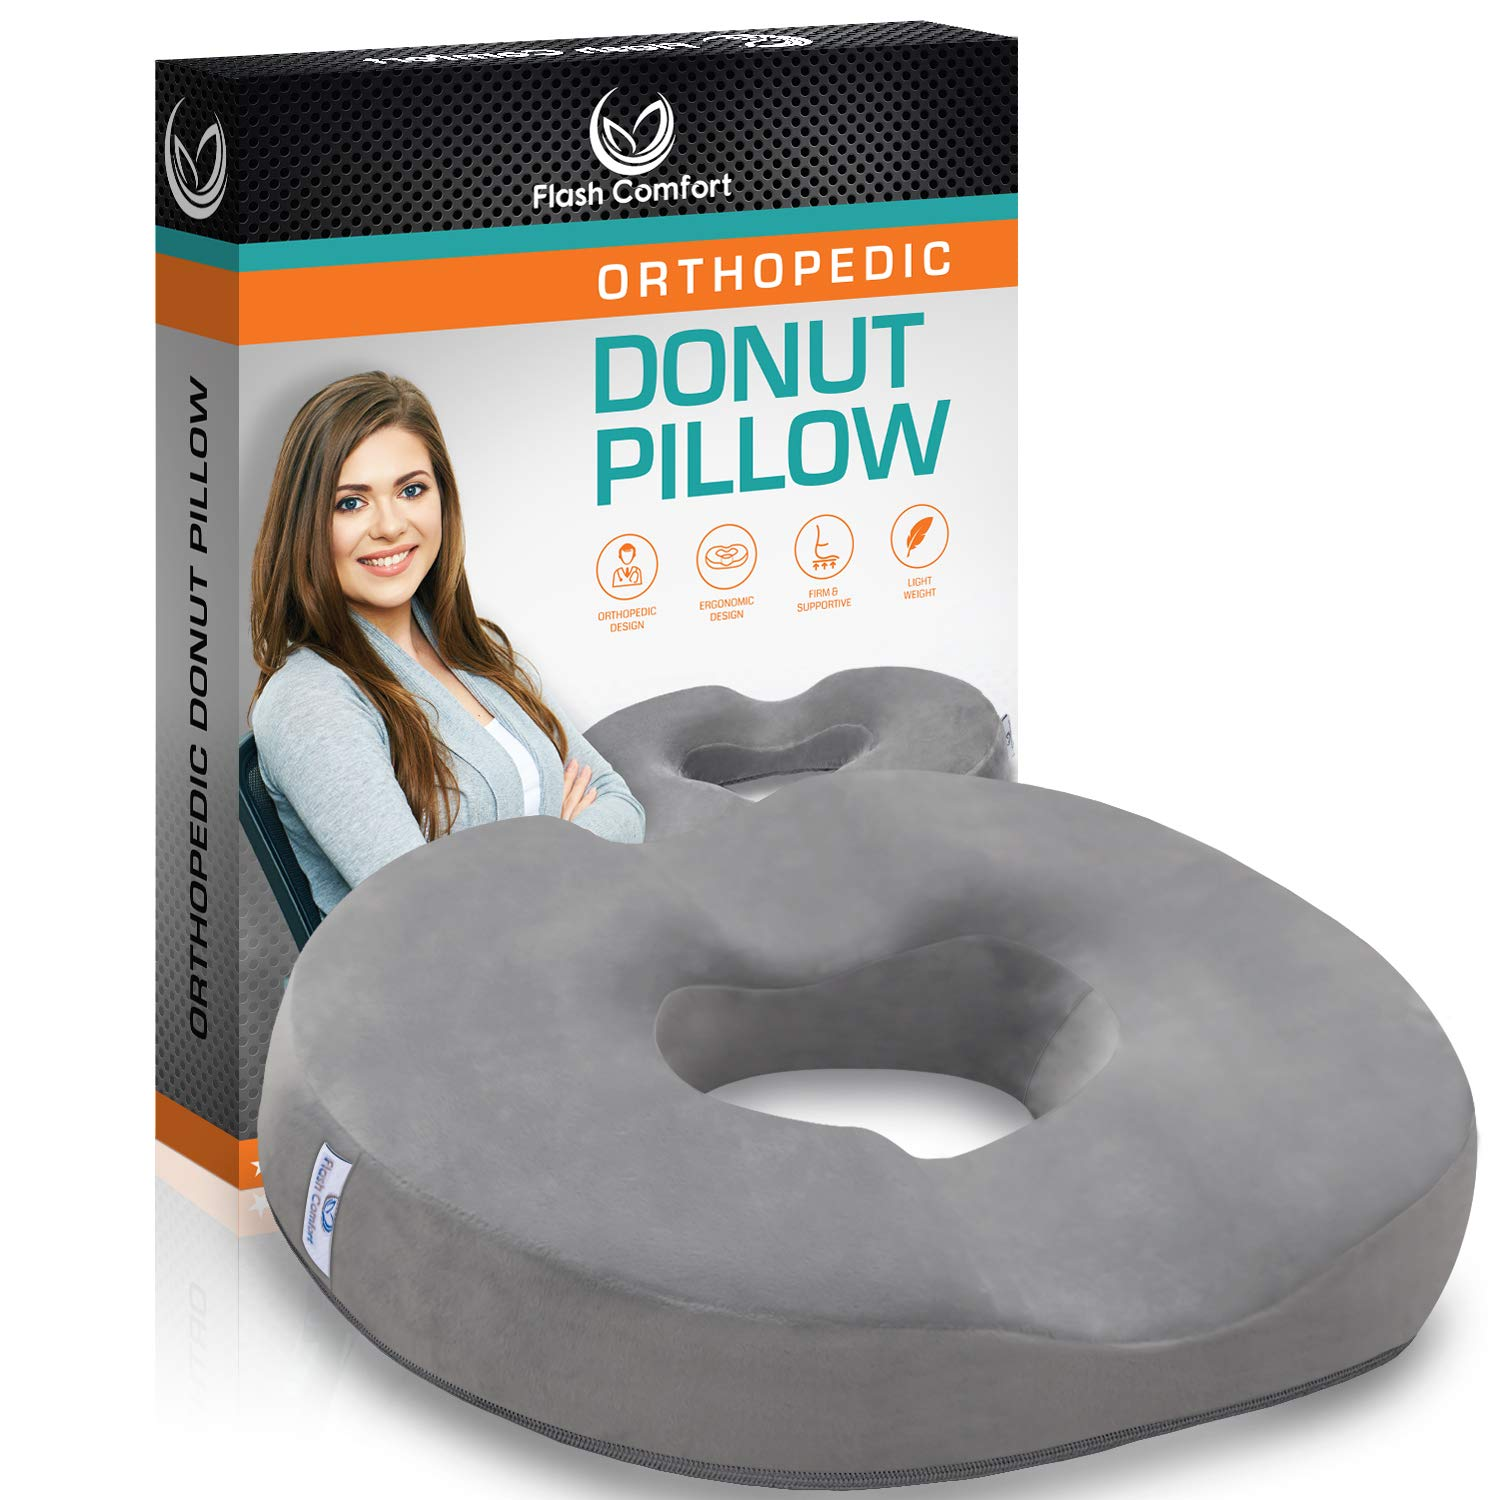 Luxury Donut Tailbone and Coccyx Pillow | Medical Firm Sitting Seat Cushion | Relief from Hemorrhoids, Prostate, Back Pain, Post Natal Orthopedic Surgery, Pregnancy and More | 100% Memory Foam | Gray by Flash Comfort